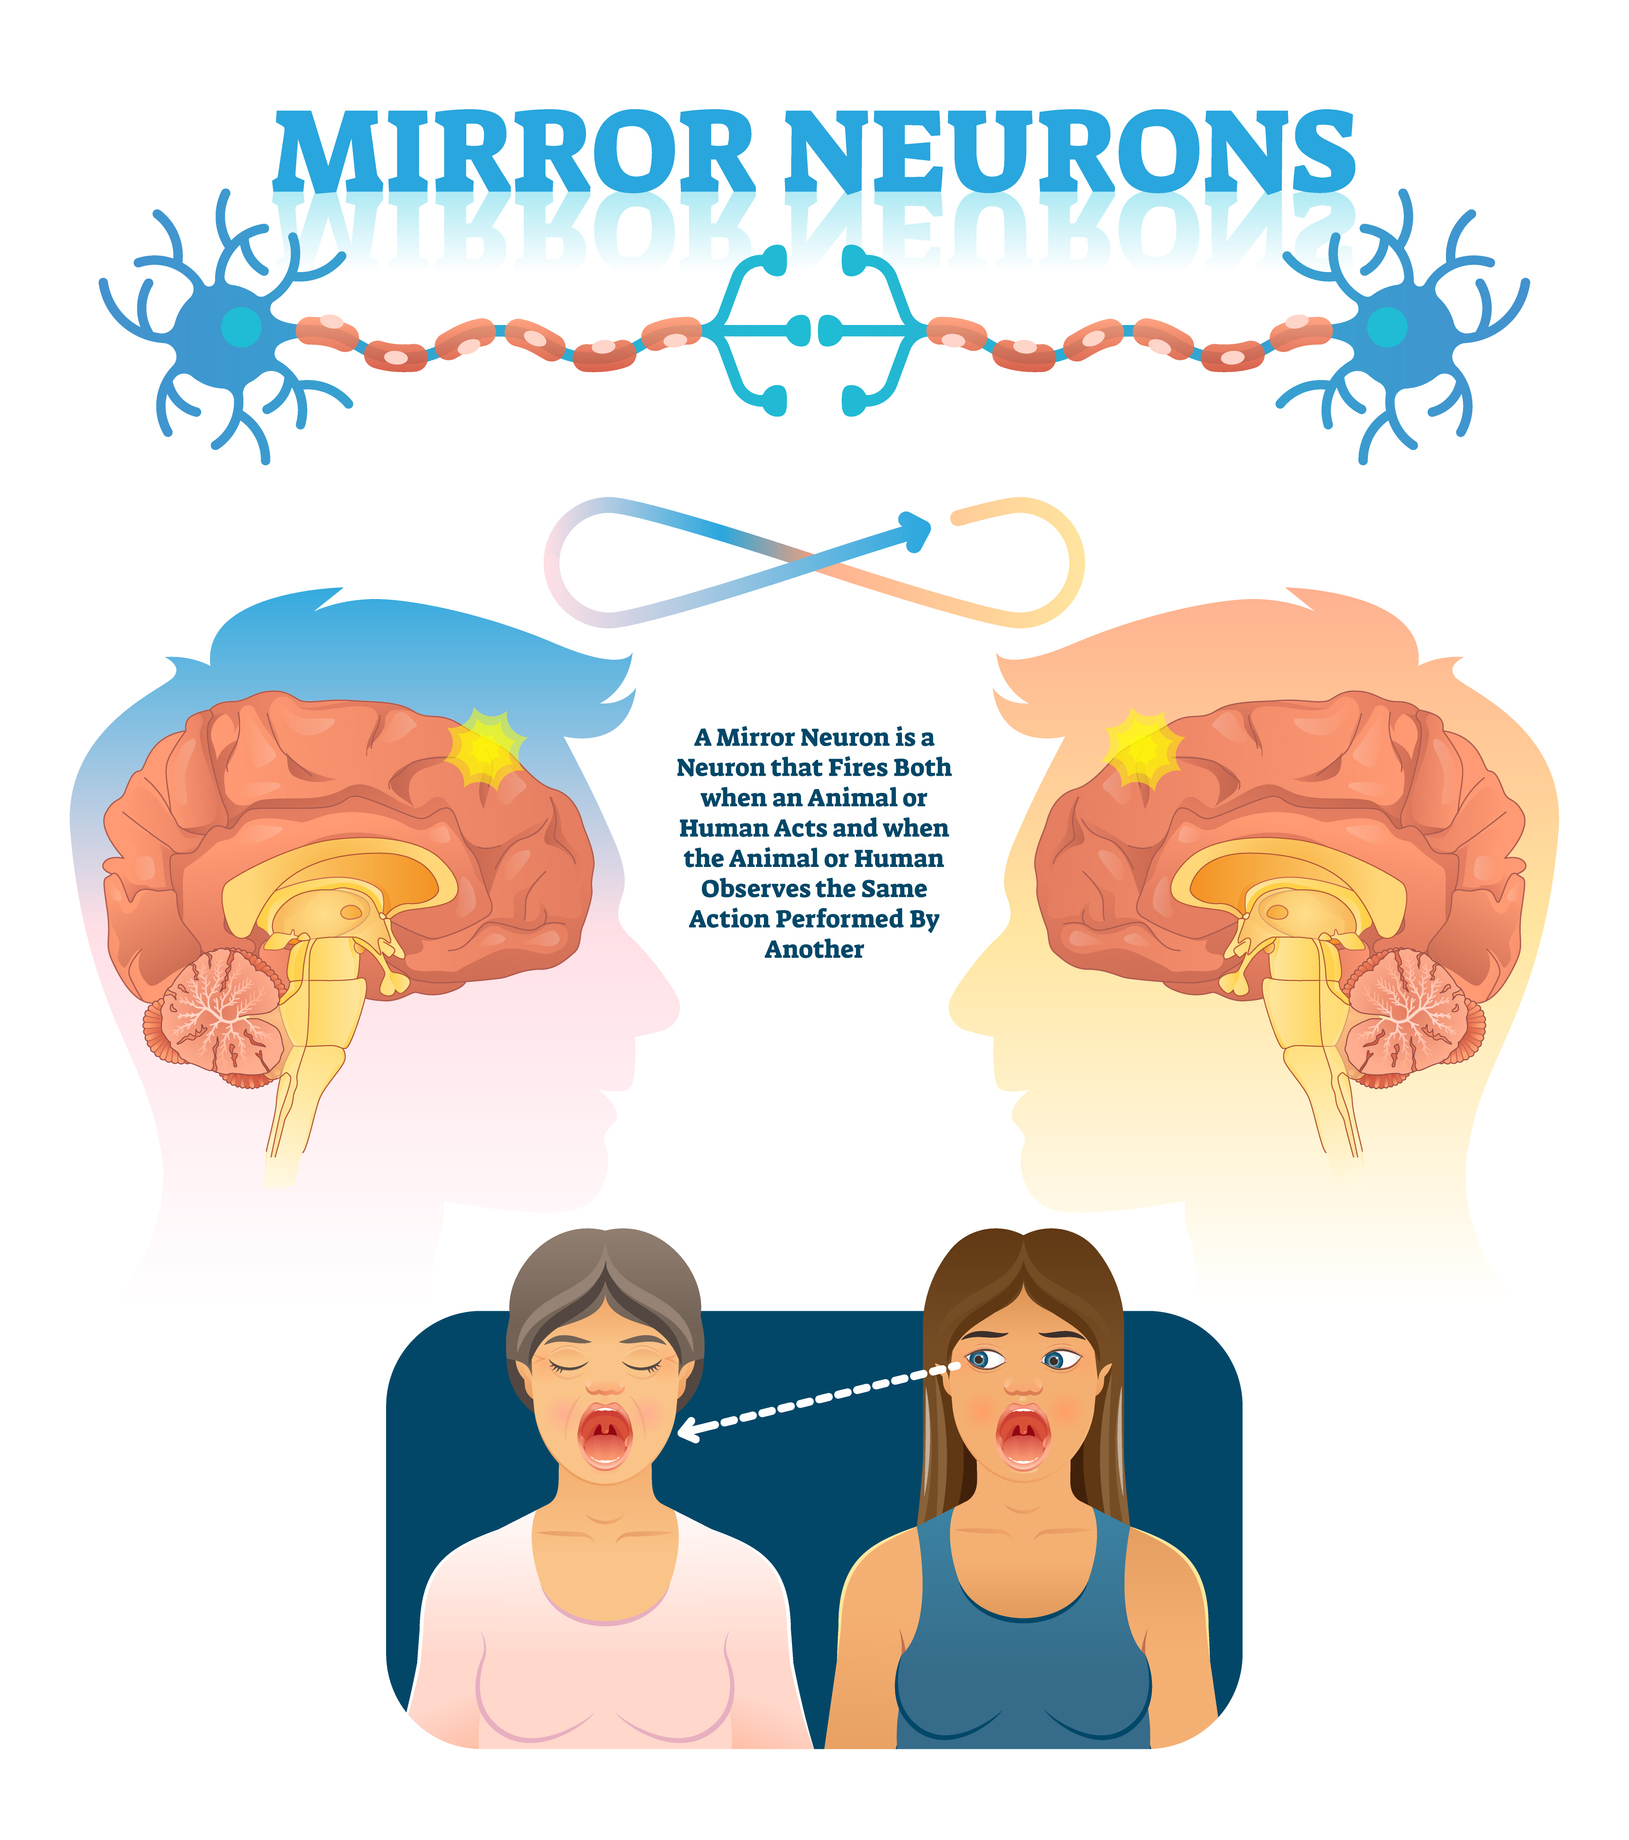 There Is Only Weak Evidence That Mirror Neurons Underlie Human Empathy – New Review And Meta-Analysis